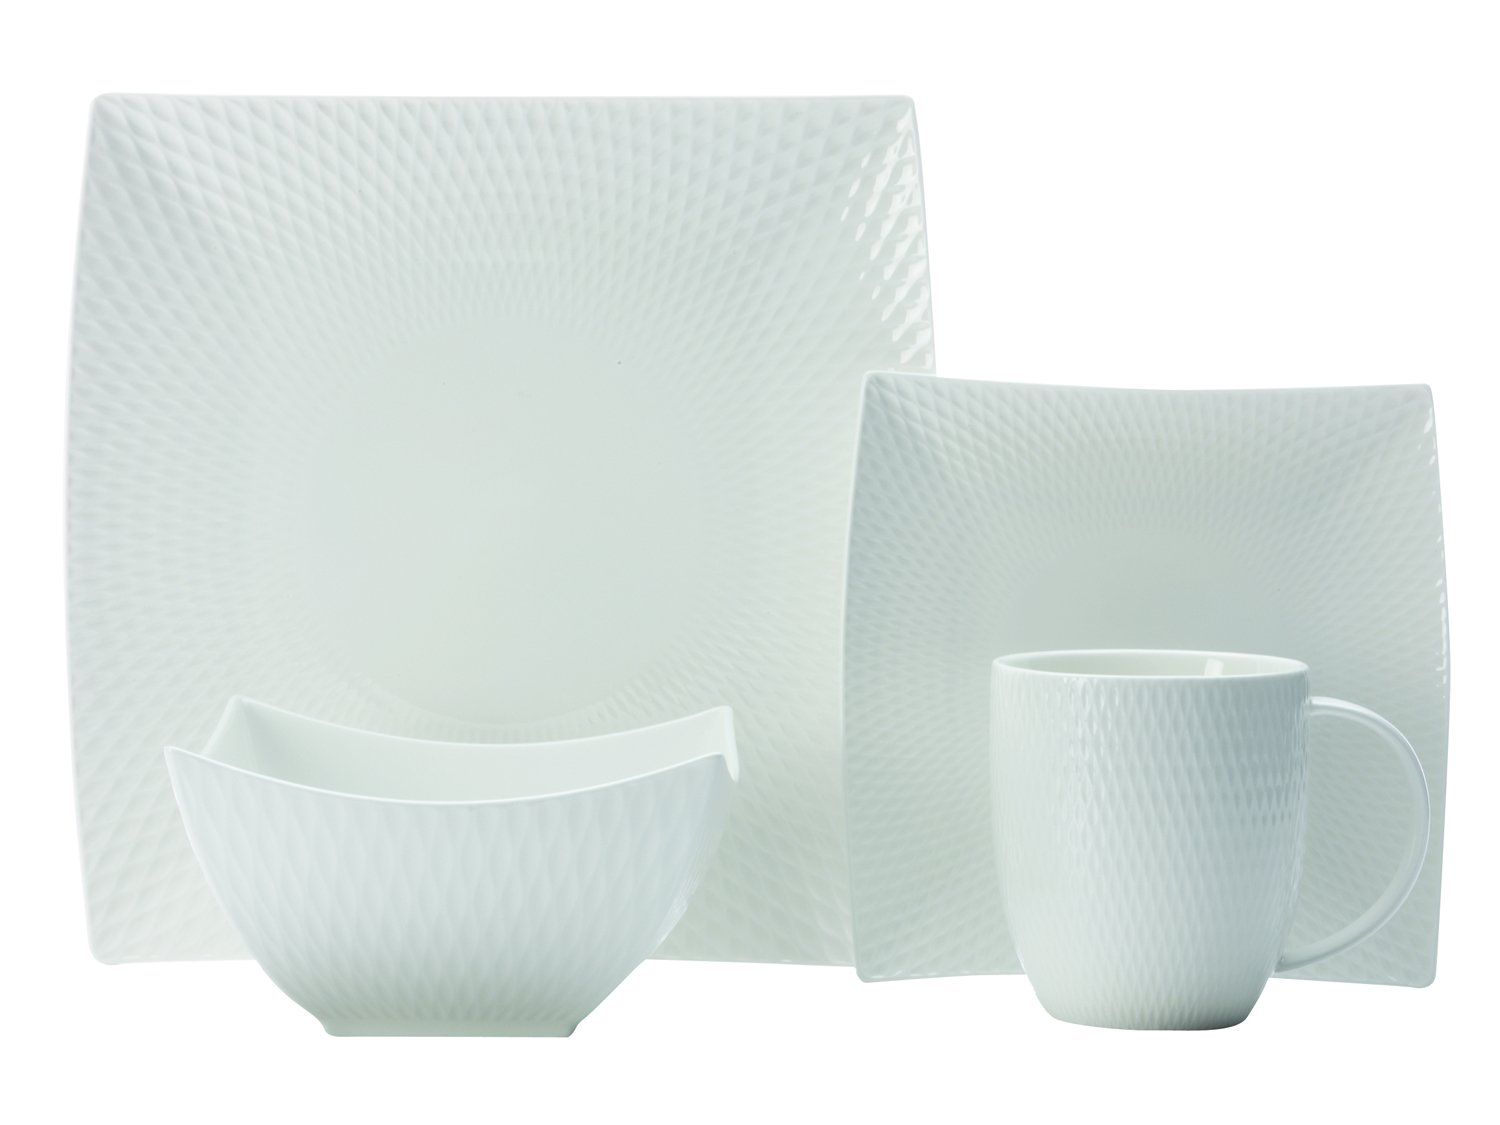 Casa Domani Maxwell & Williams Diamonds Square Dinner Set, White, 16-Piece JX260716